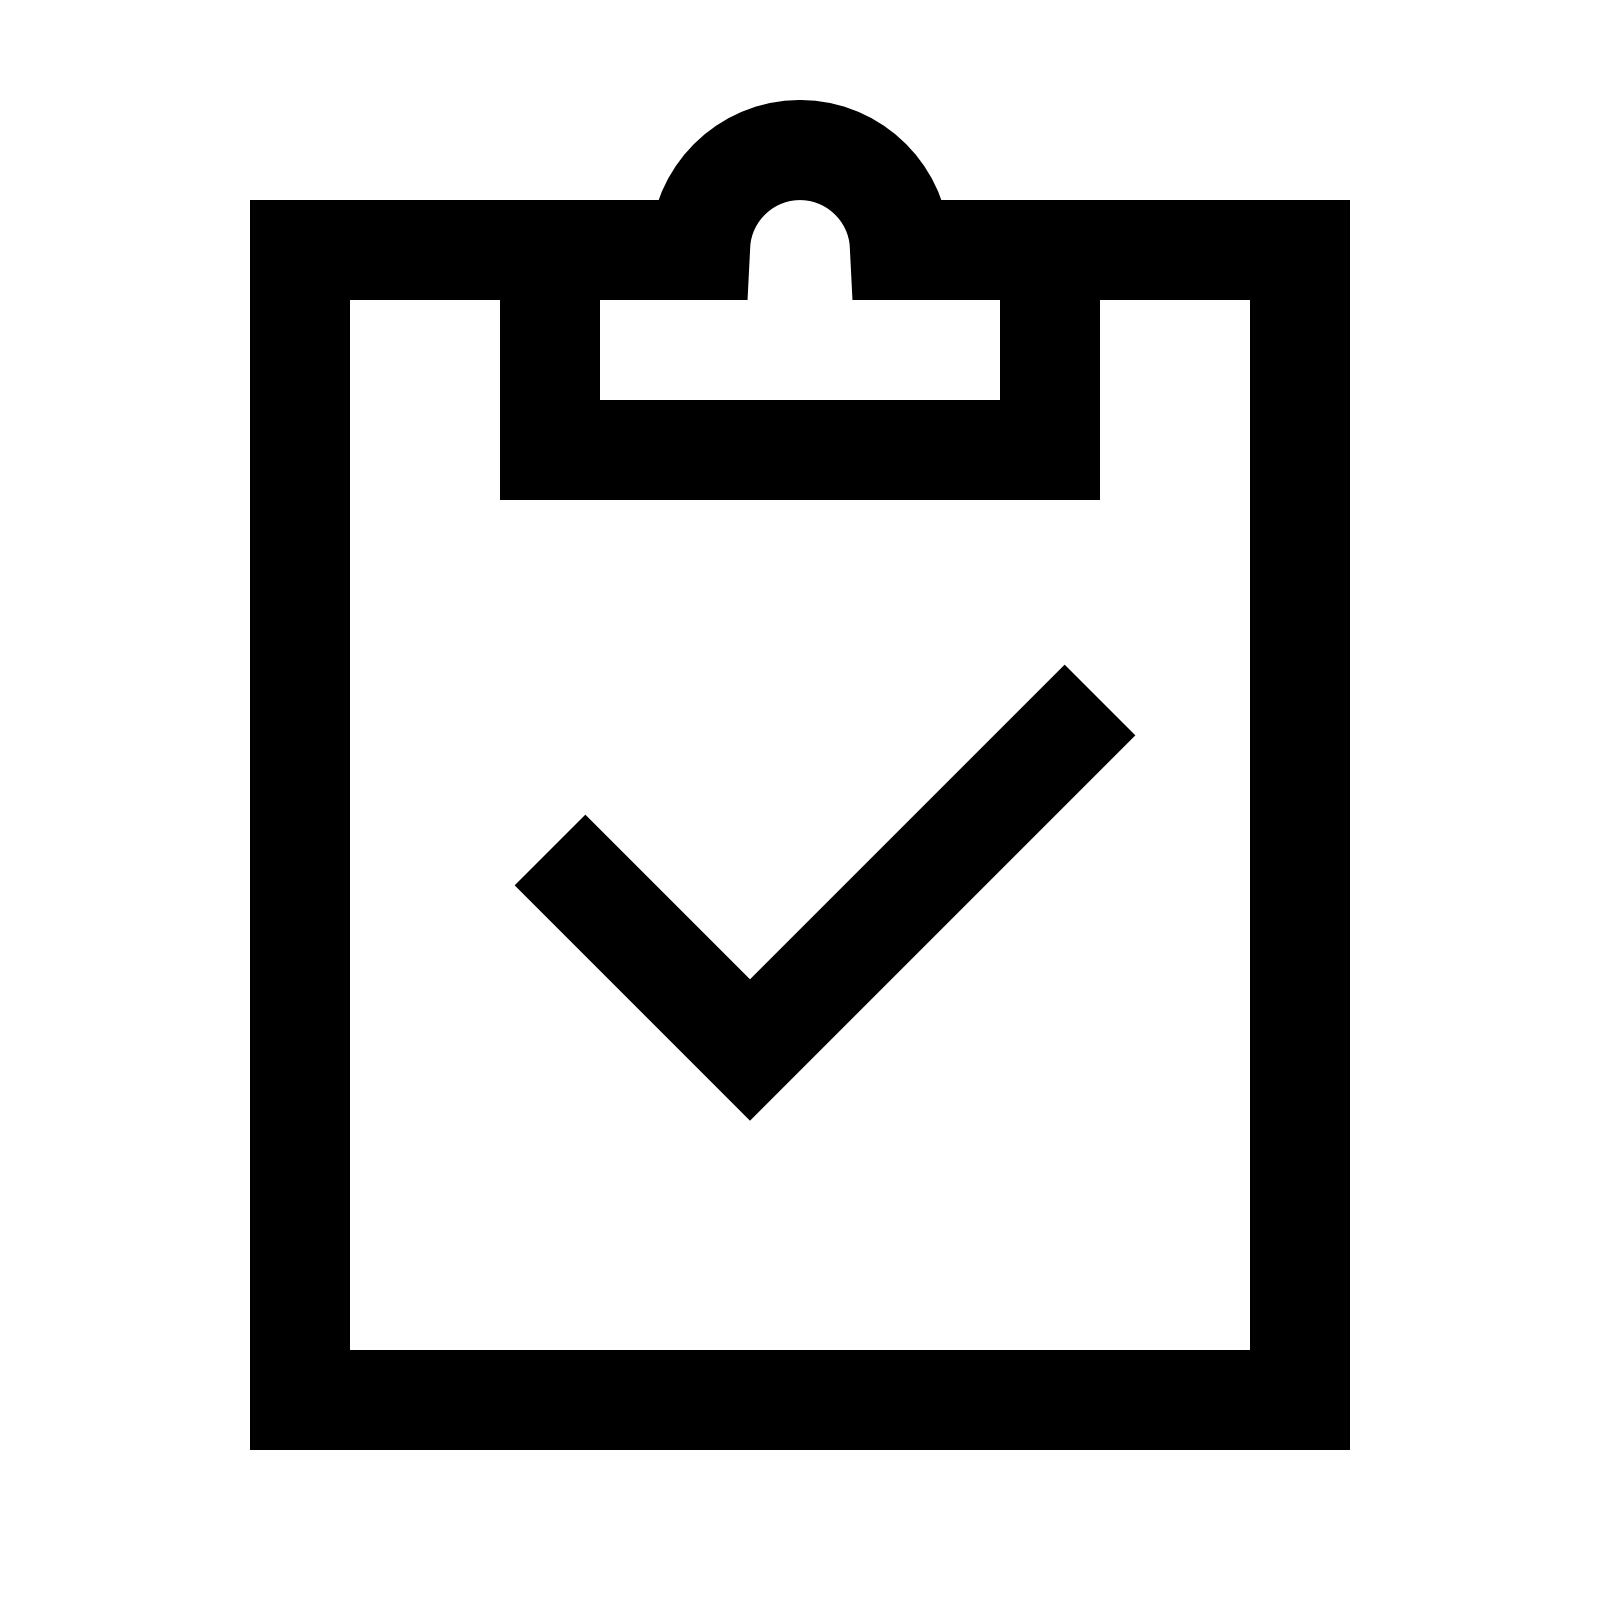 Free inspection pictures icons. Clipboard clipart inspector